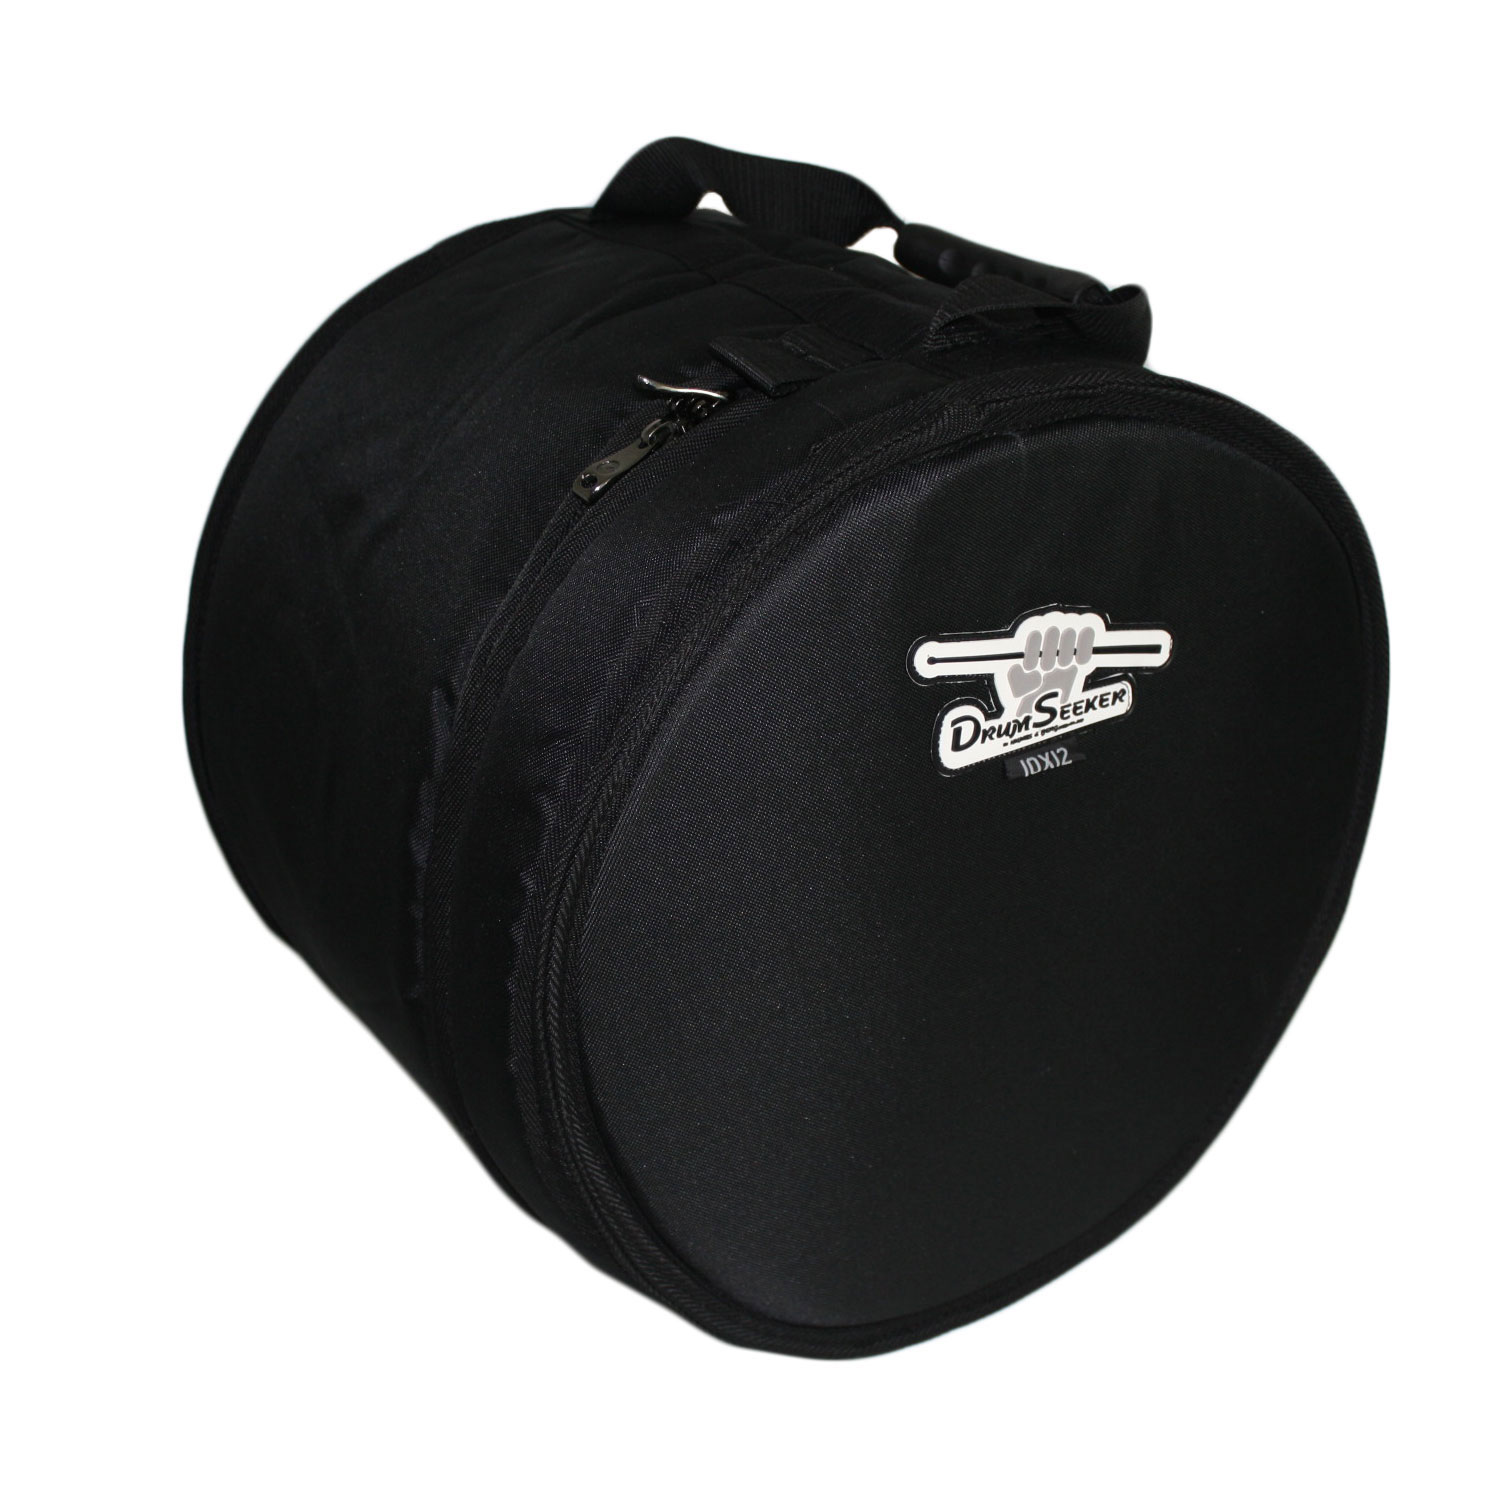 "Humes & Berg 3"" (Deep) x 13"" (Diameter) Drum Seeker Snare Bag/Soft Case"